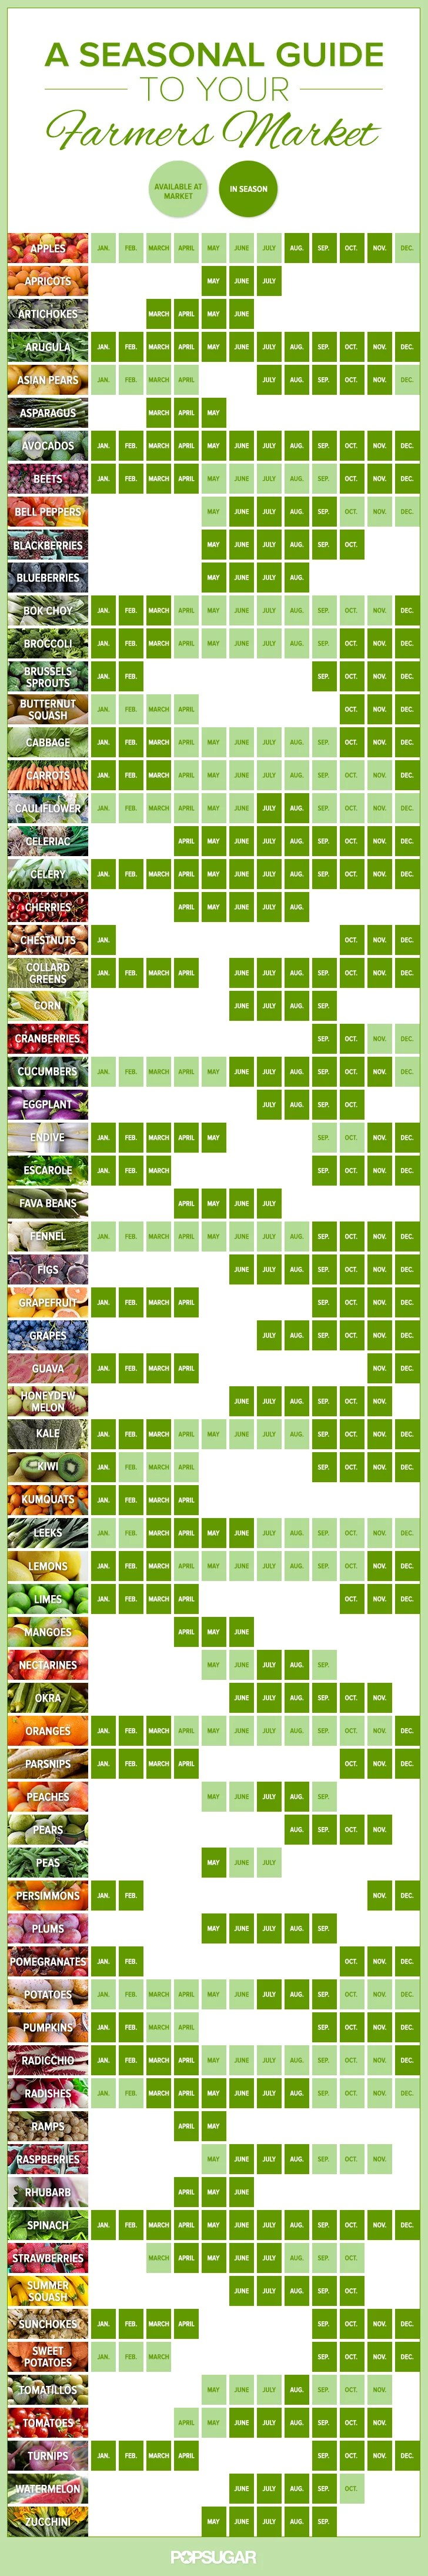 Farmer's Market Seasonal Produce Guide [Infographic] | ecogreenlove